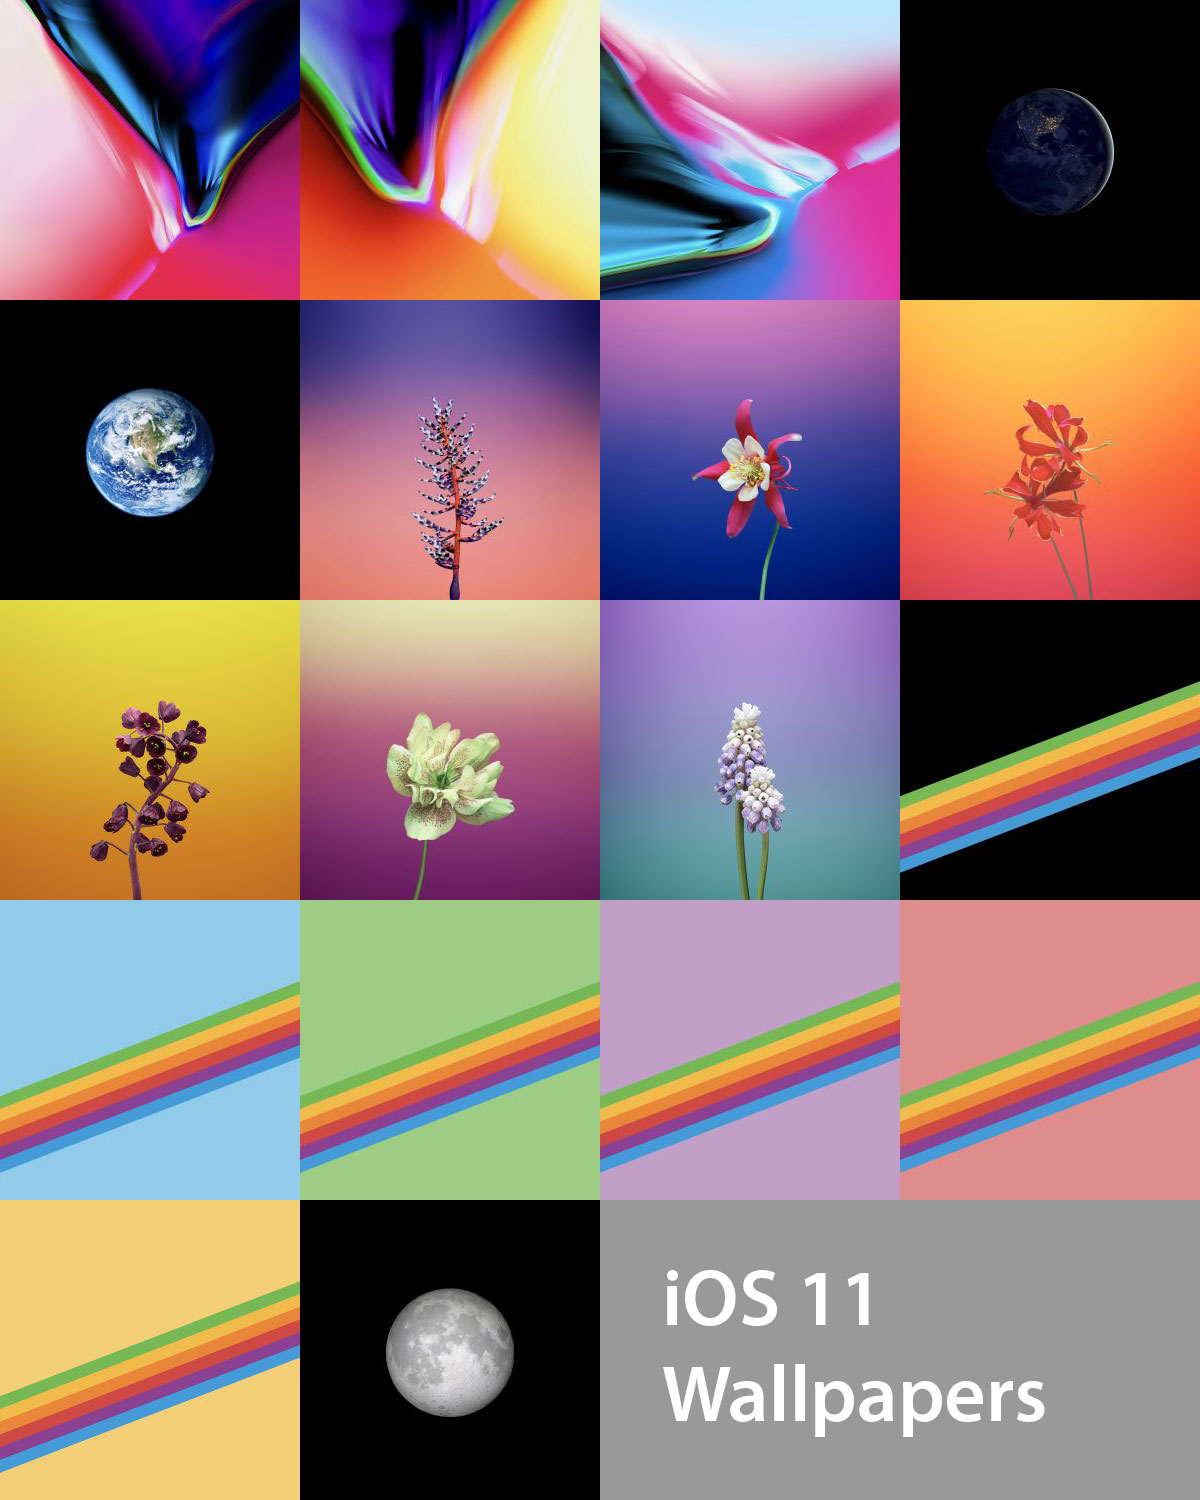 Download The Official iOS 11 Wallpapers For iPhone And iPad 1200x1500